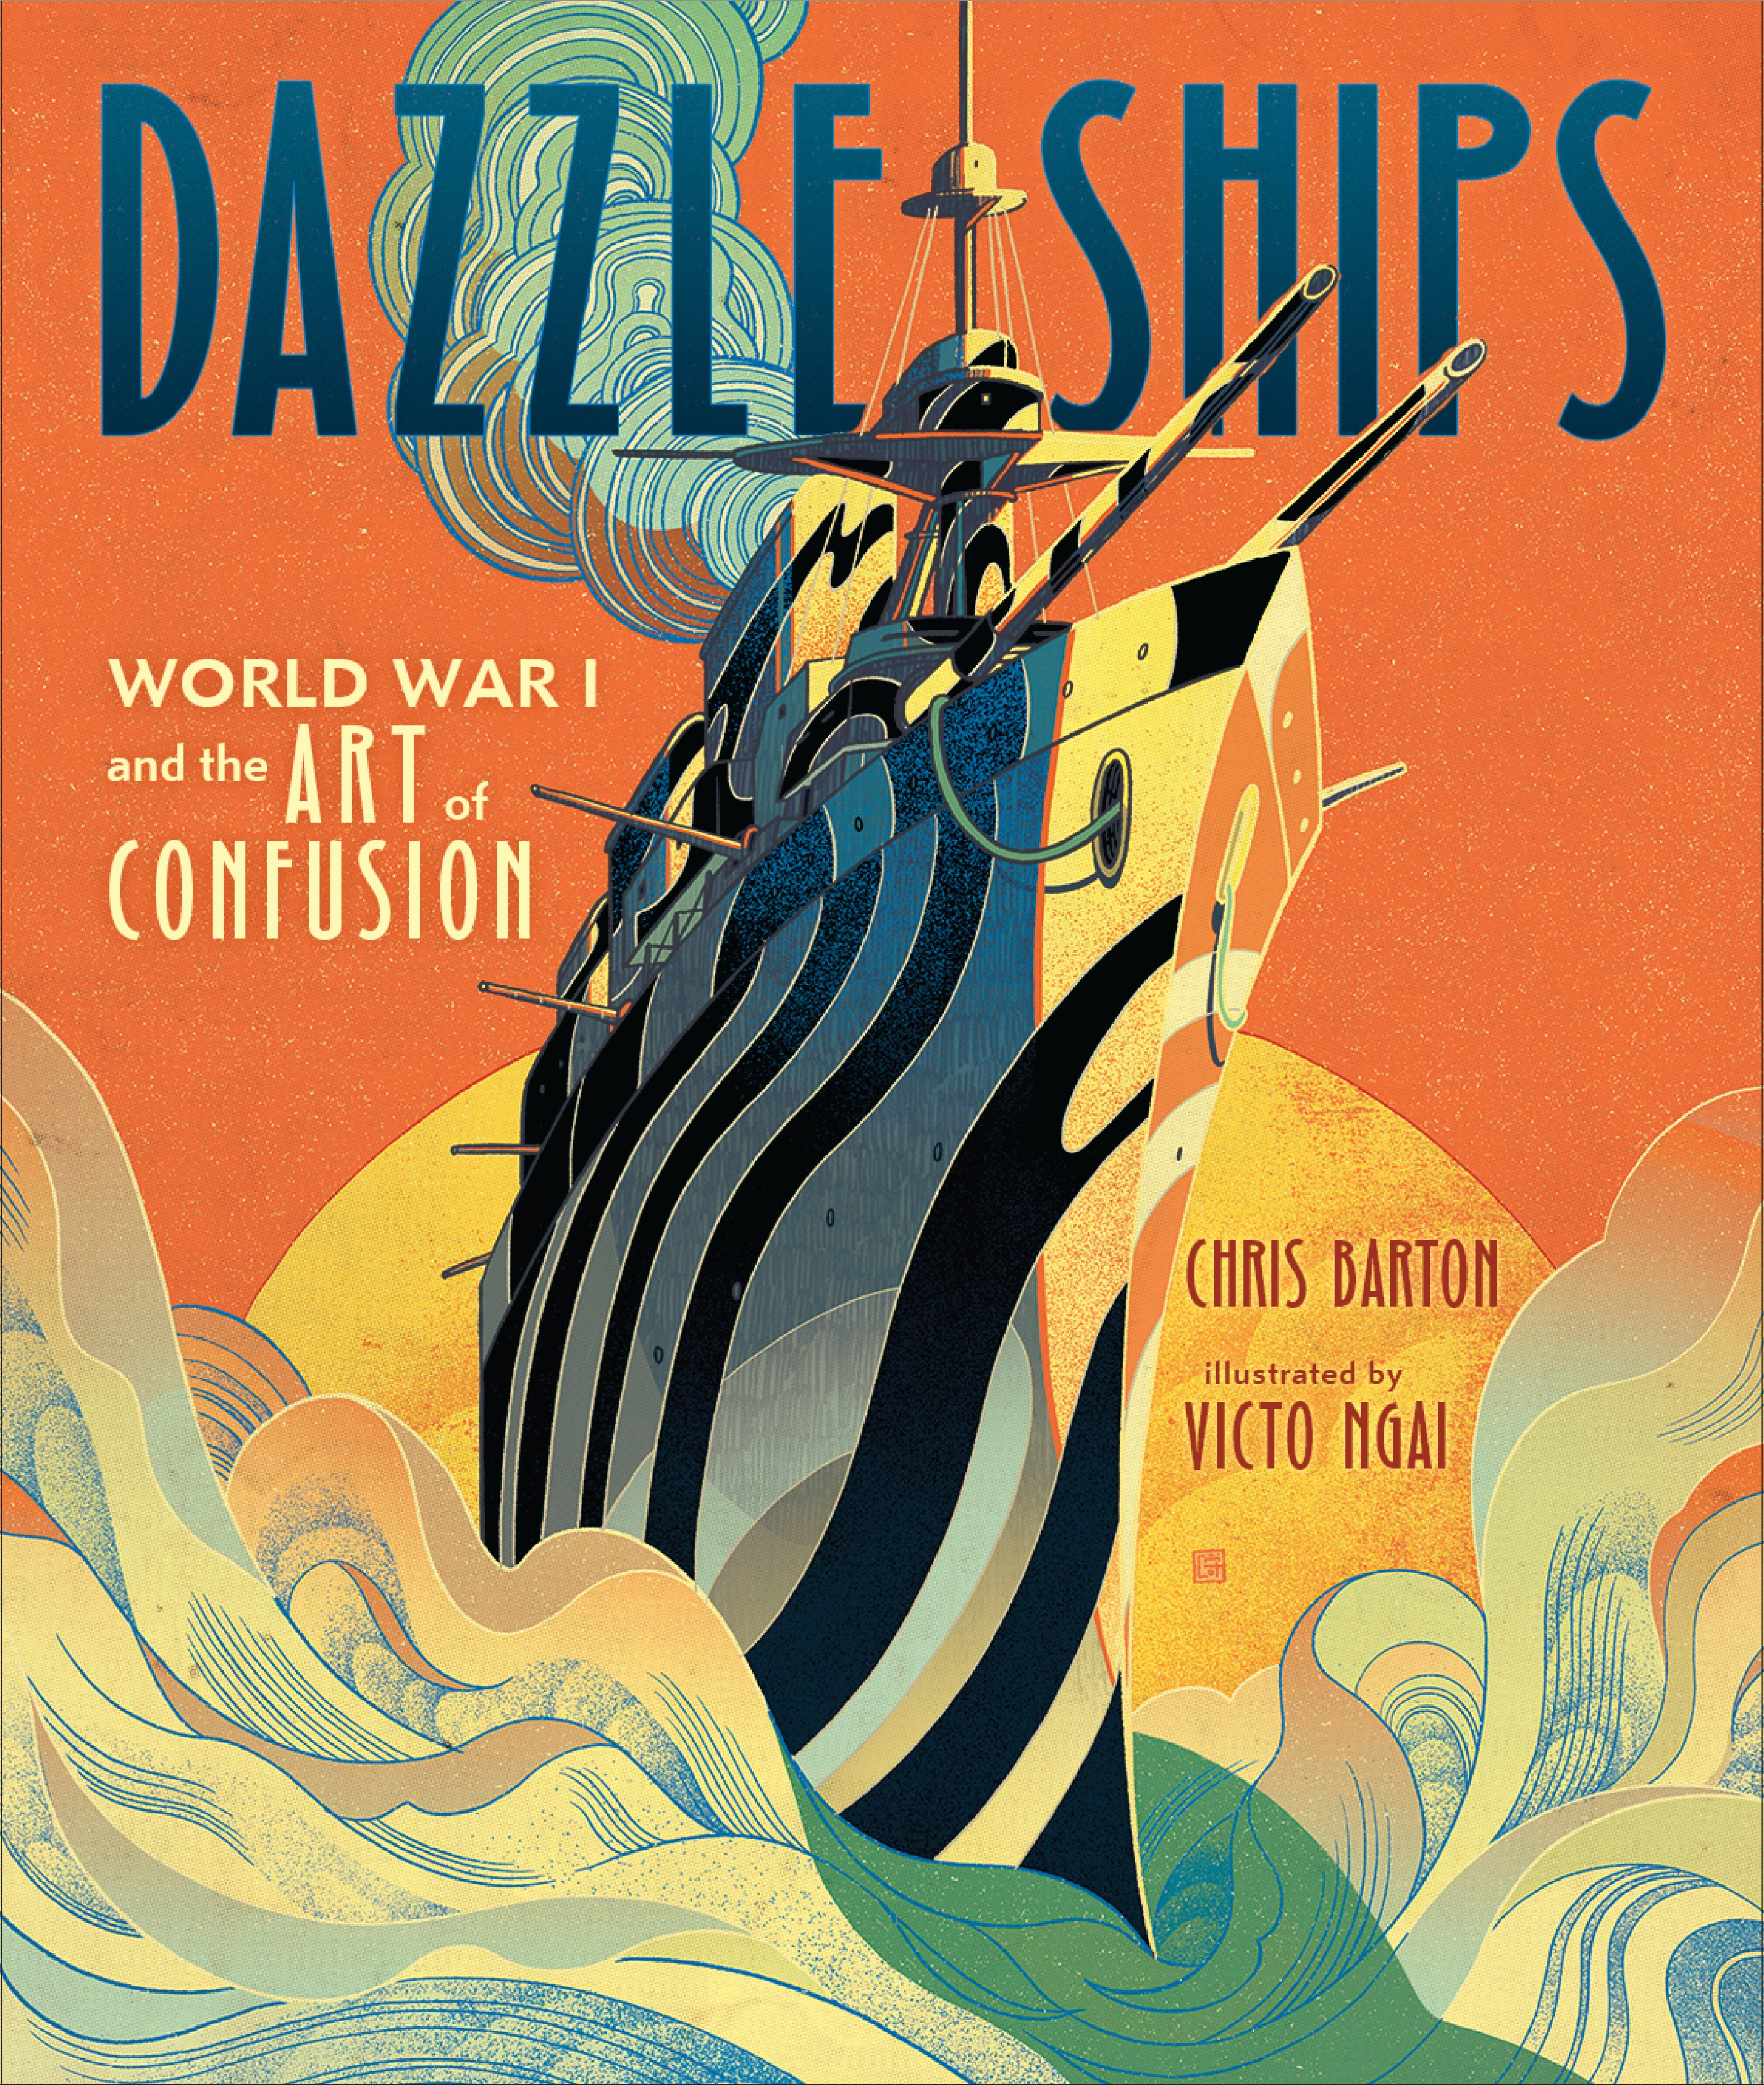 Ask me anything about Dazzle Ships